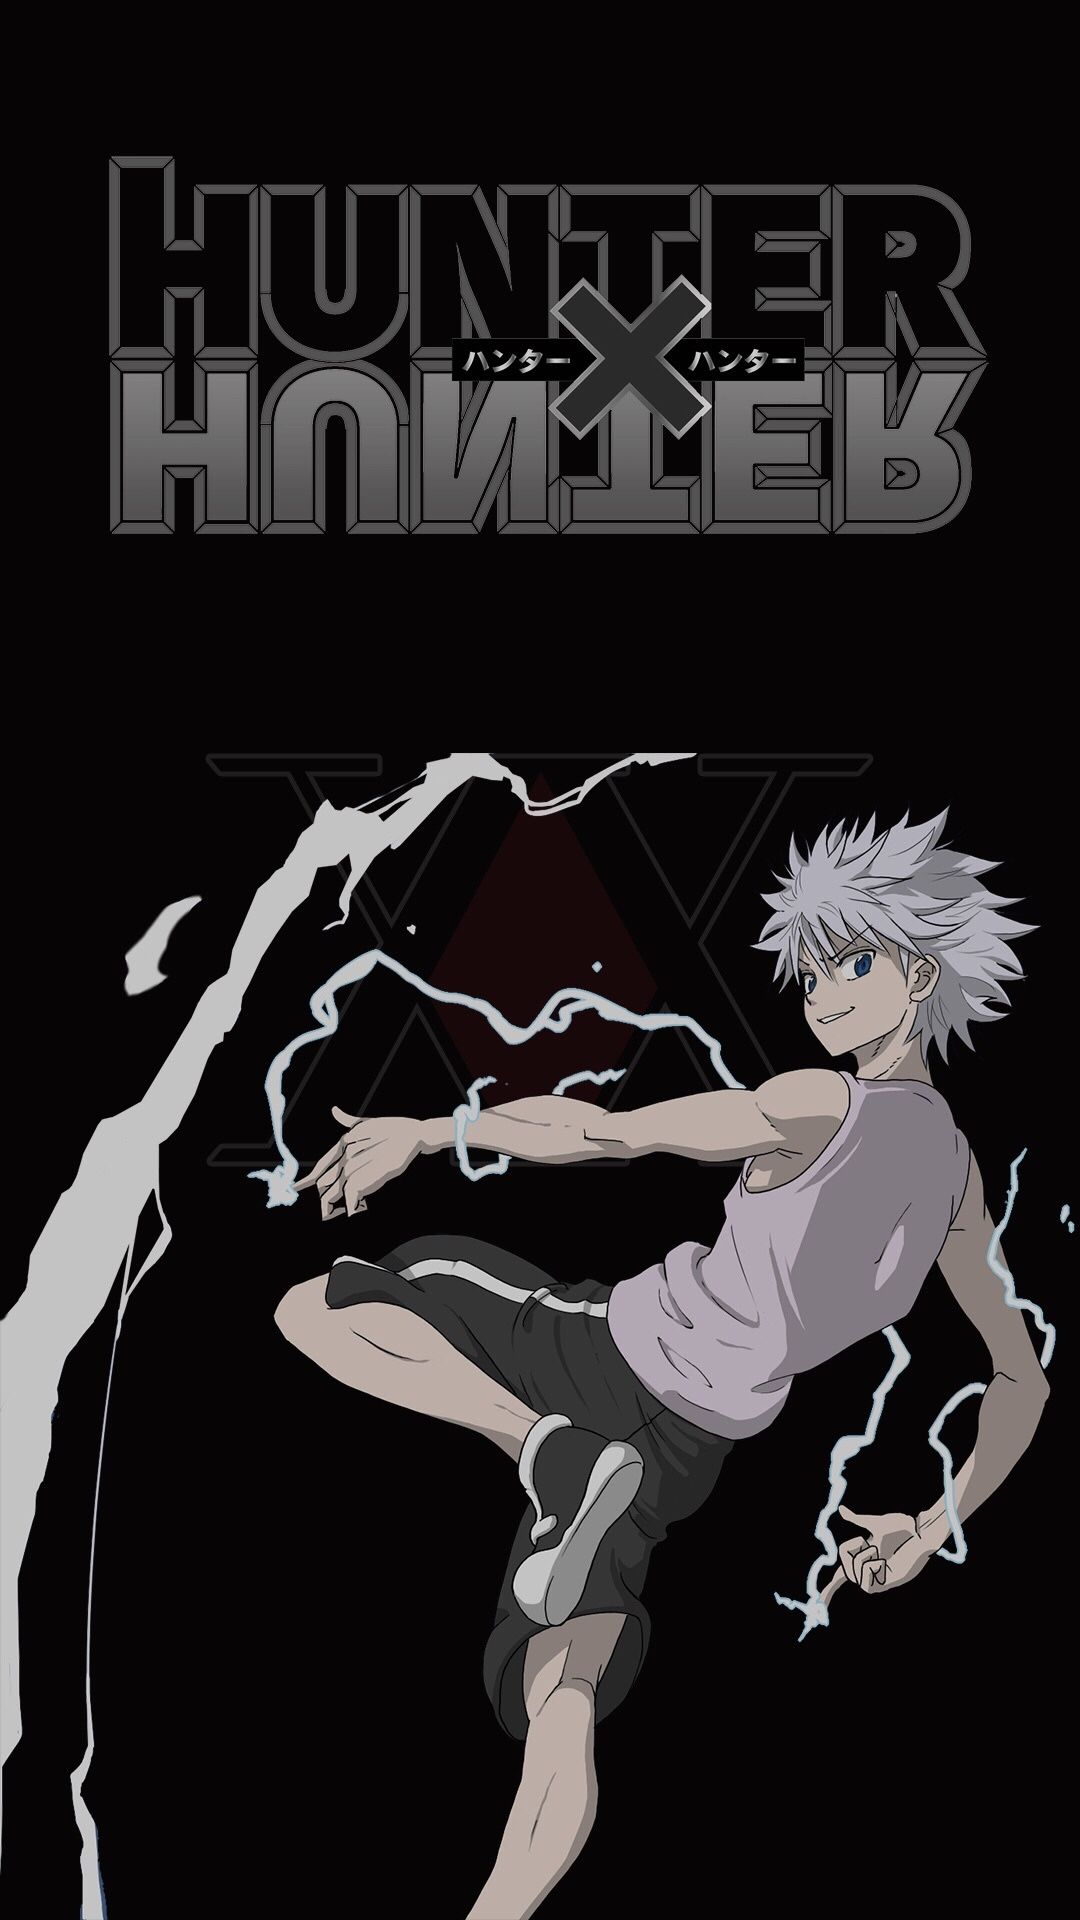 Check the link to download HD wallpapers of Hunter X